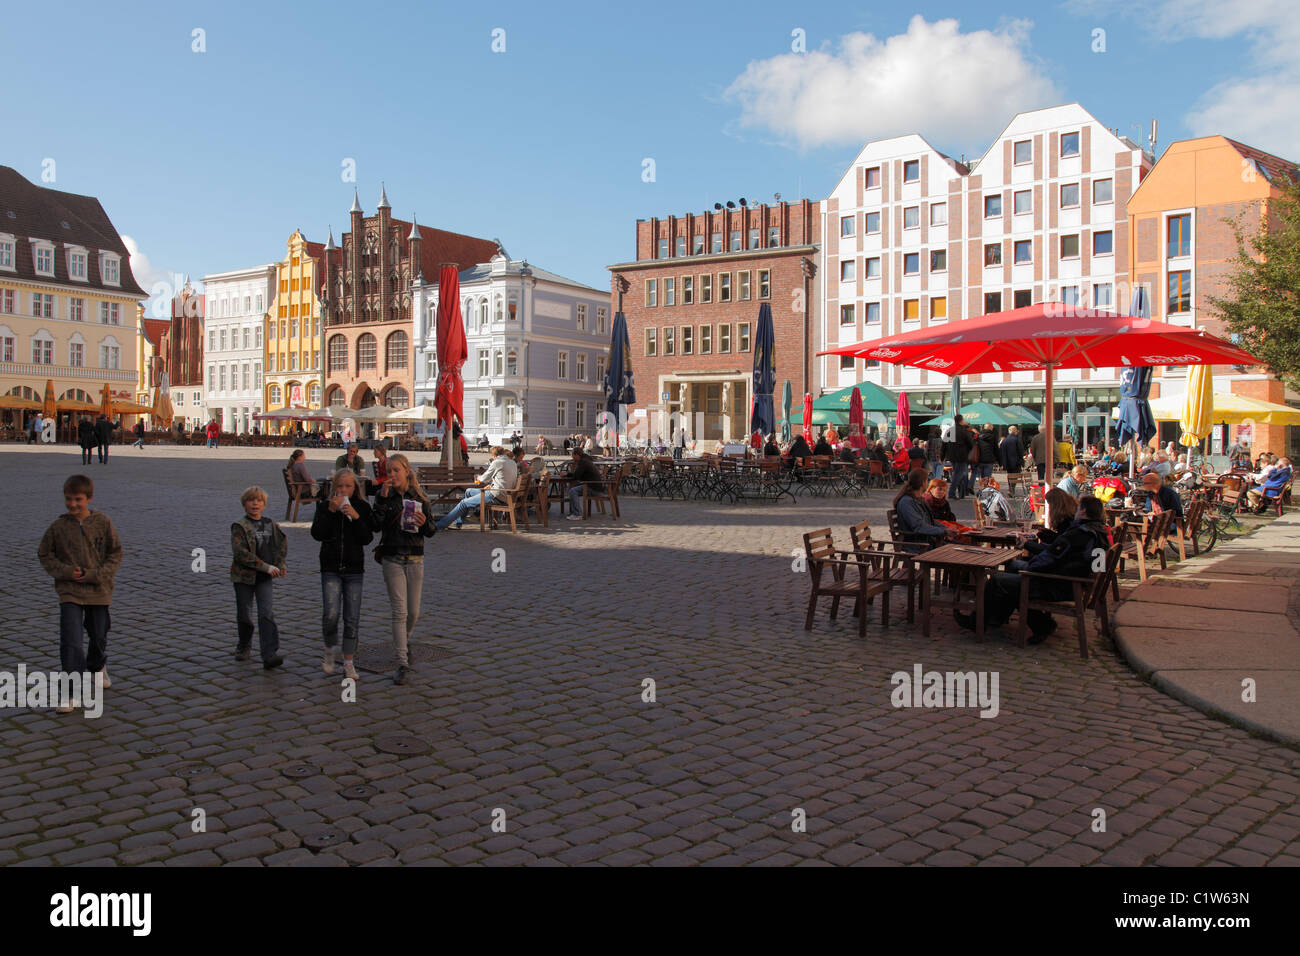 market place in Stralsund a Hanseatic City in Germany - Stock Image